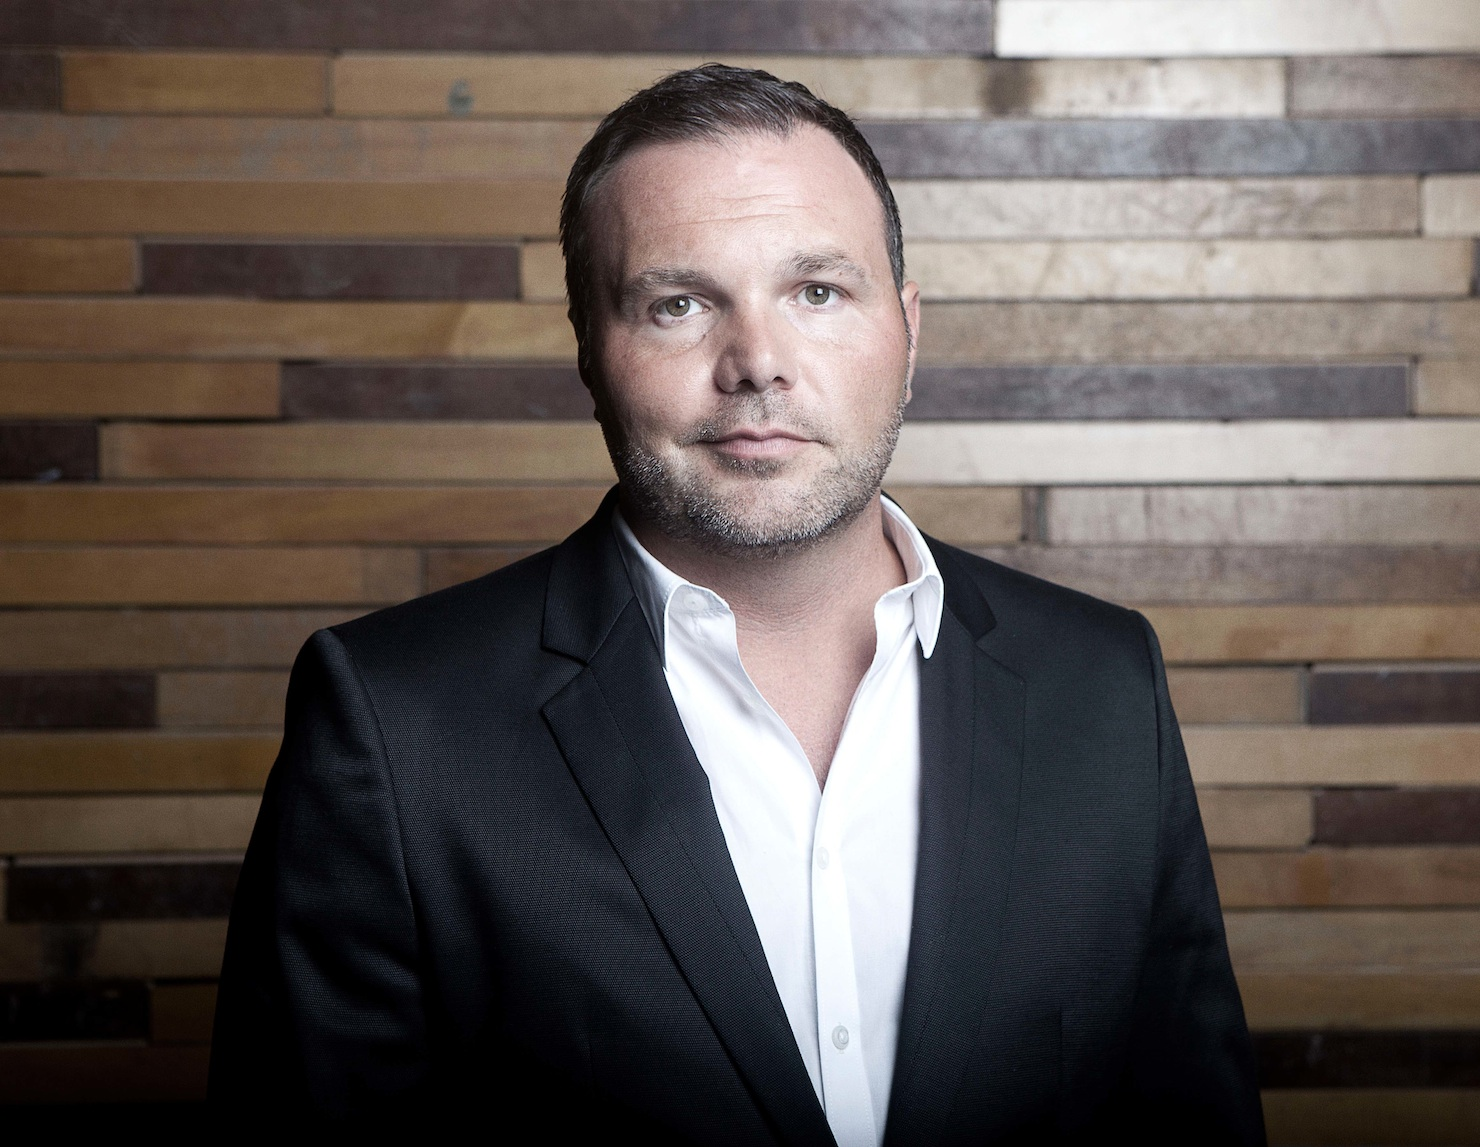 mark driscoll dating podcast